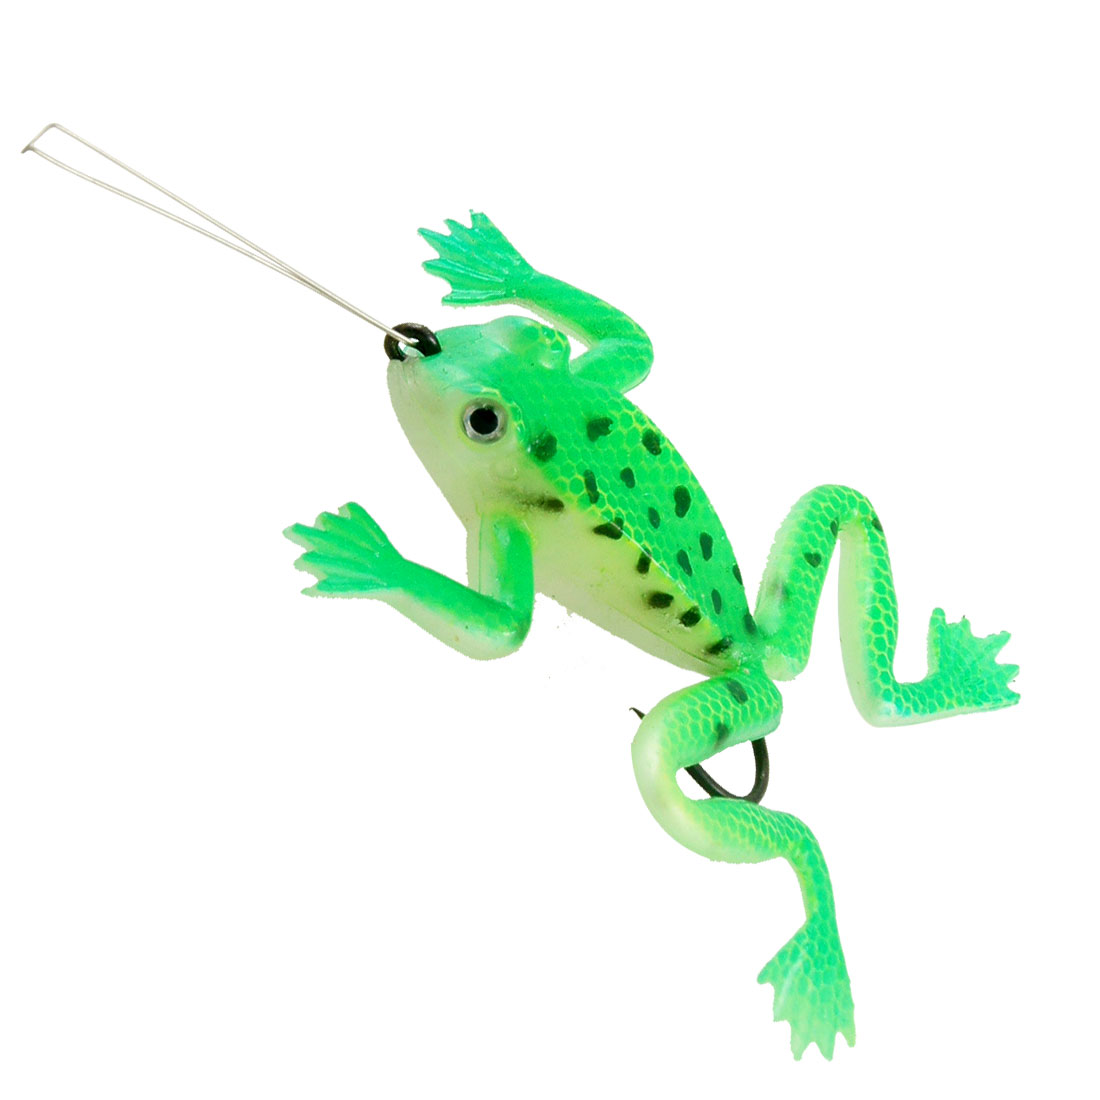 Emulational Soft Silicone Frog Green Fishing Bait w Metal Hook